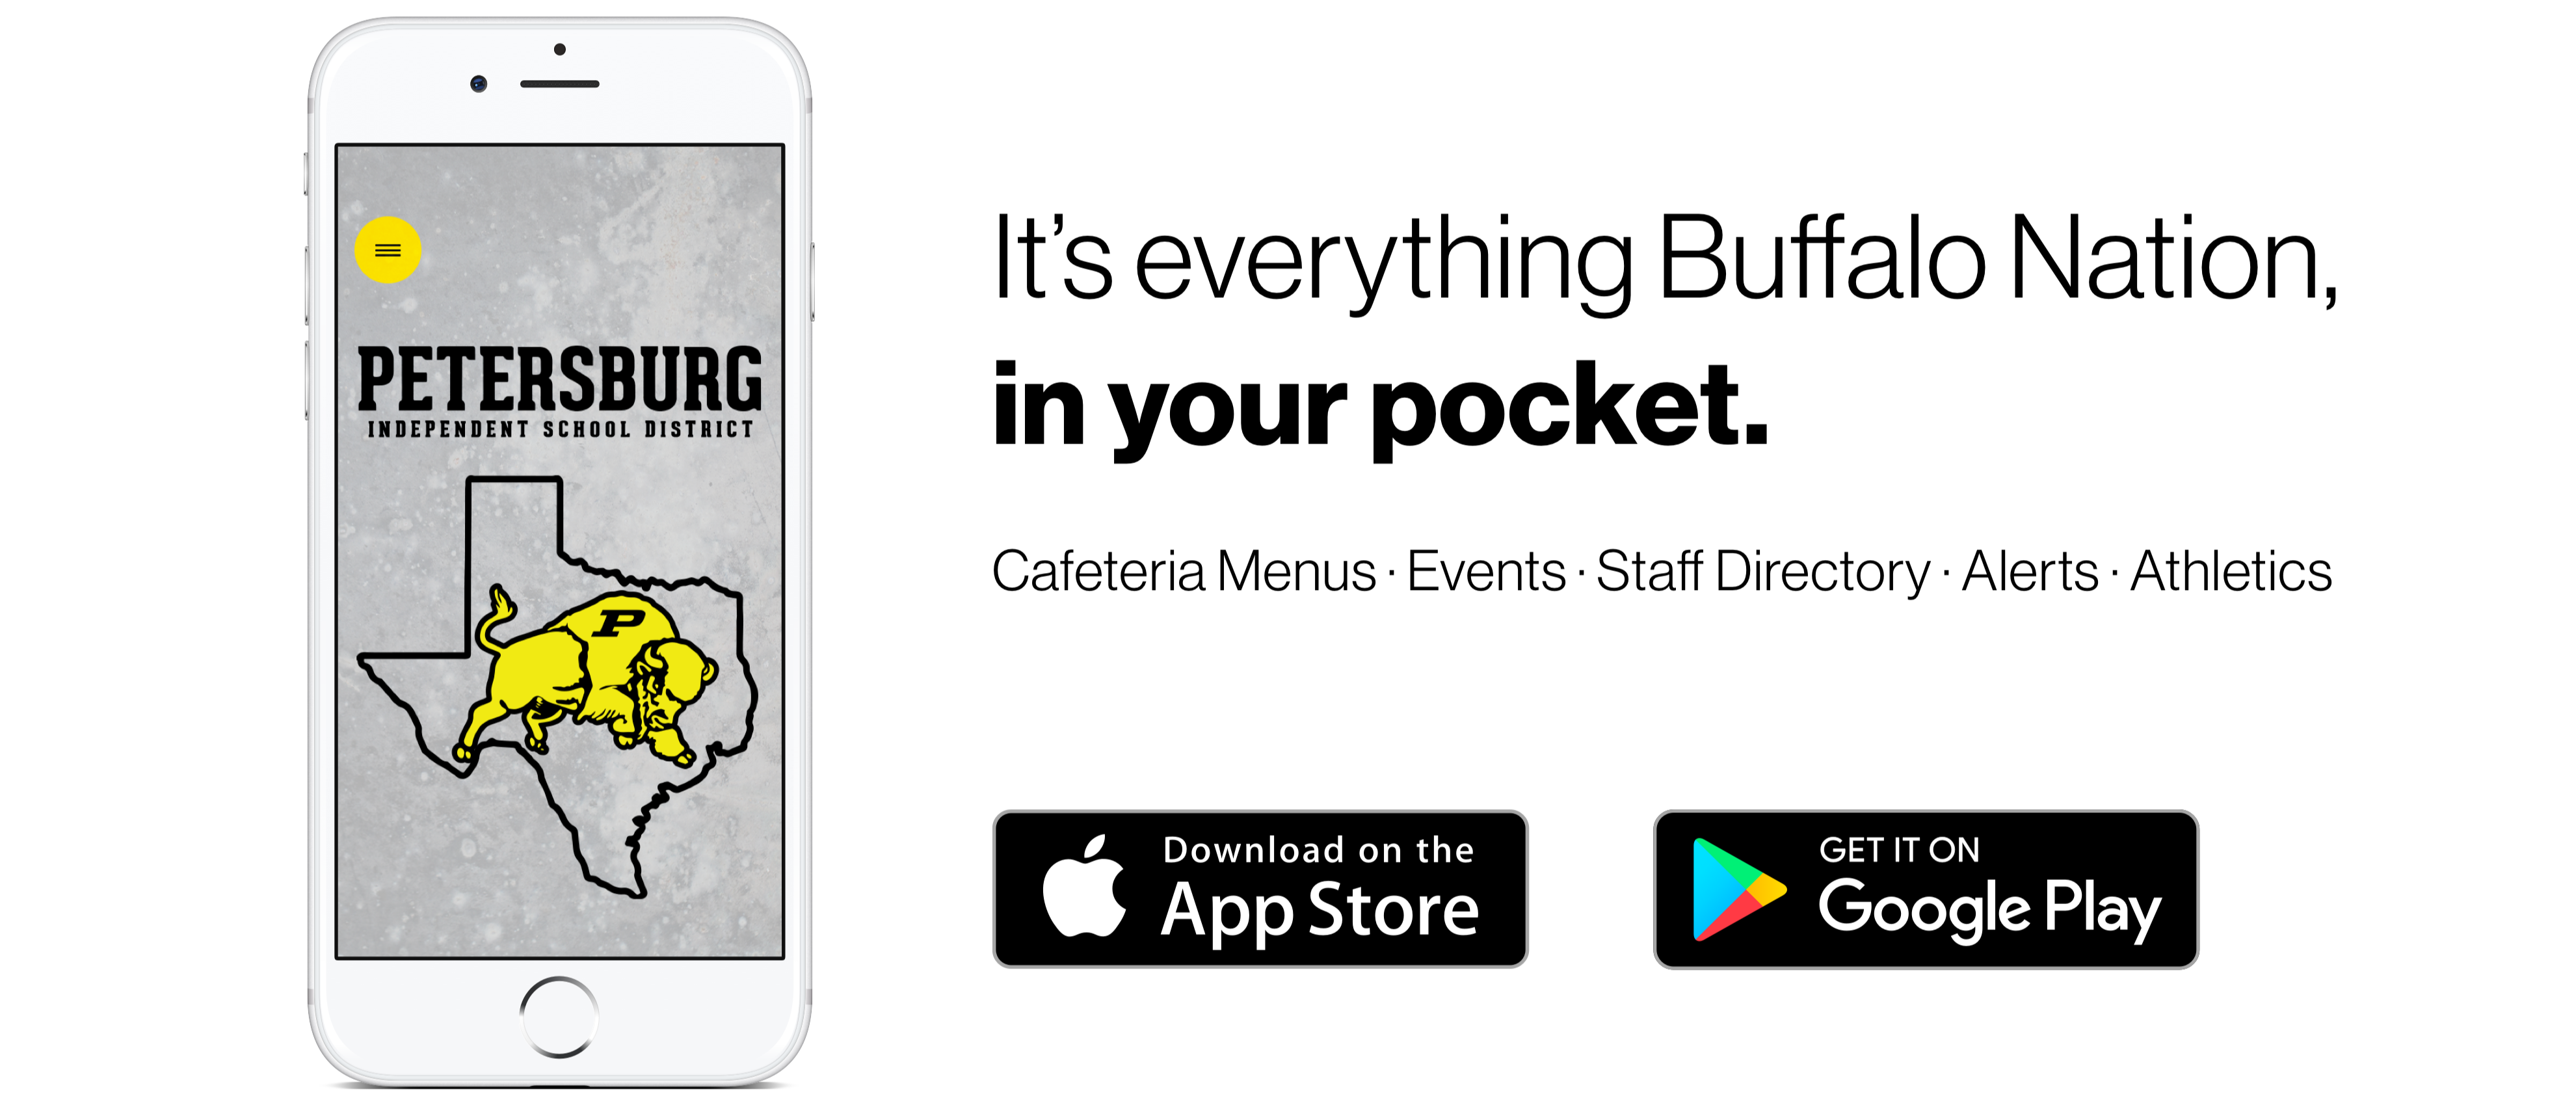 It's everything Buffalo Nation, in your pocket.